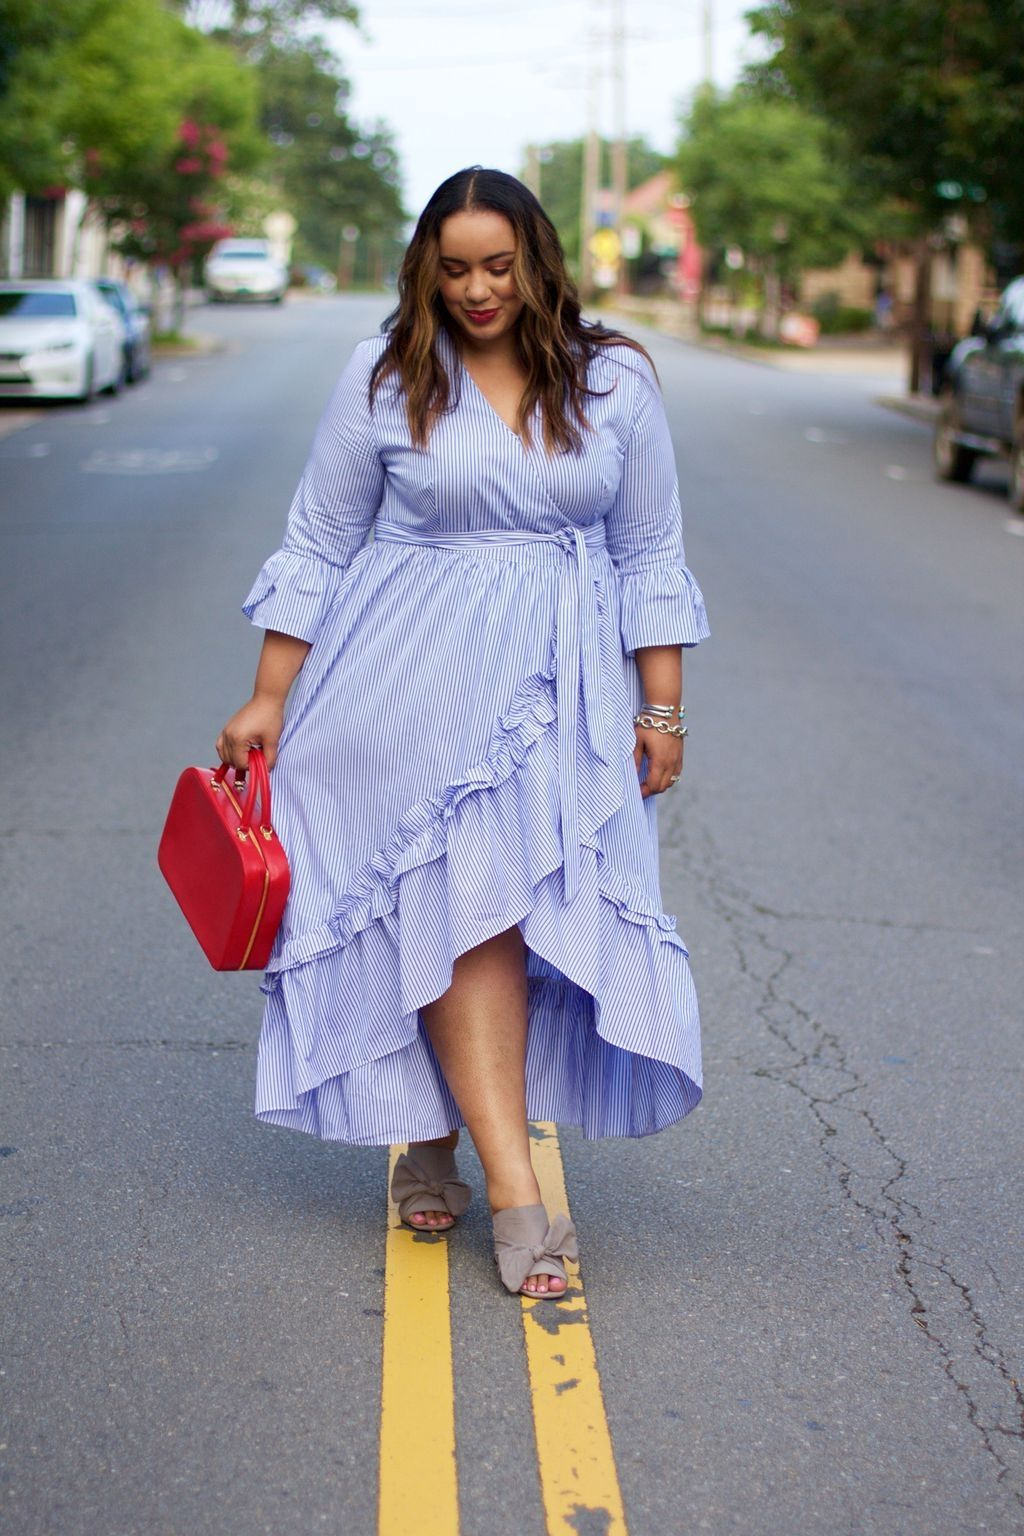 Stylish Plus Size Outfits Ideas For Summer 201849 Jpg 1024 1536 Plus Size Fashion Plus Size Outfits Target Summer Dresses [ 1536 x 1024 Pixel ]